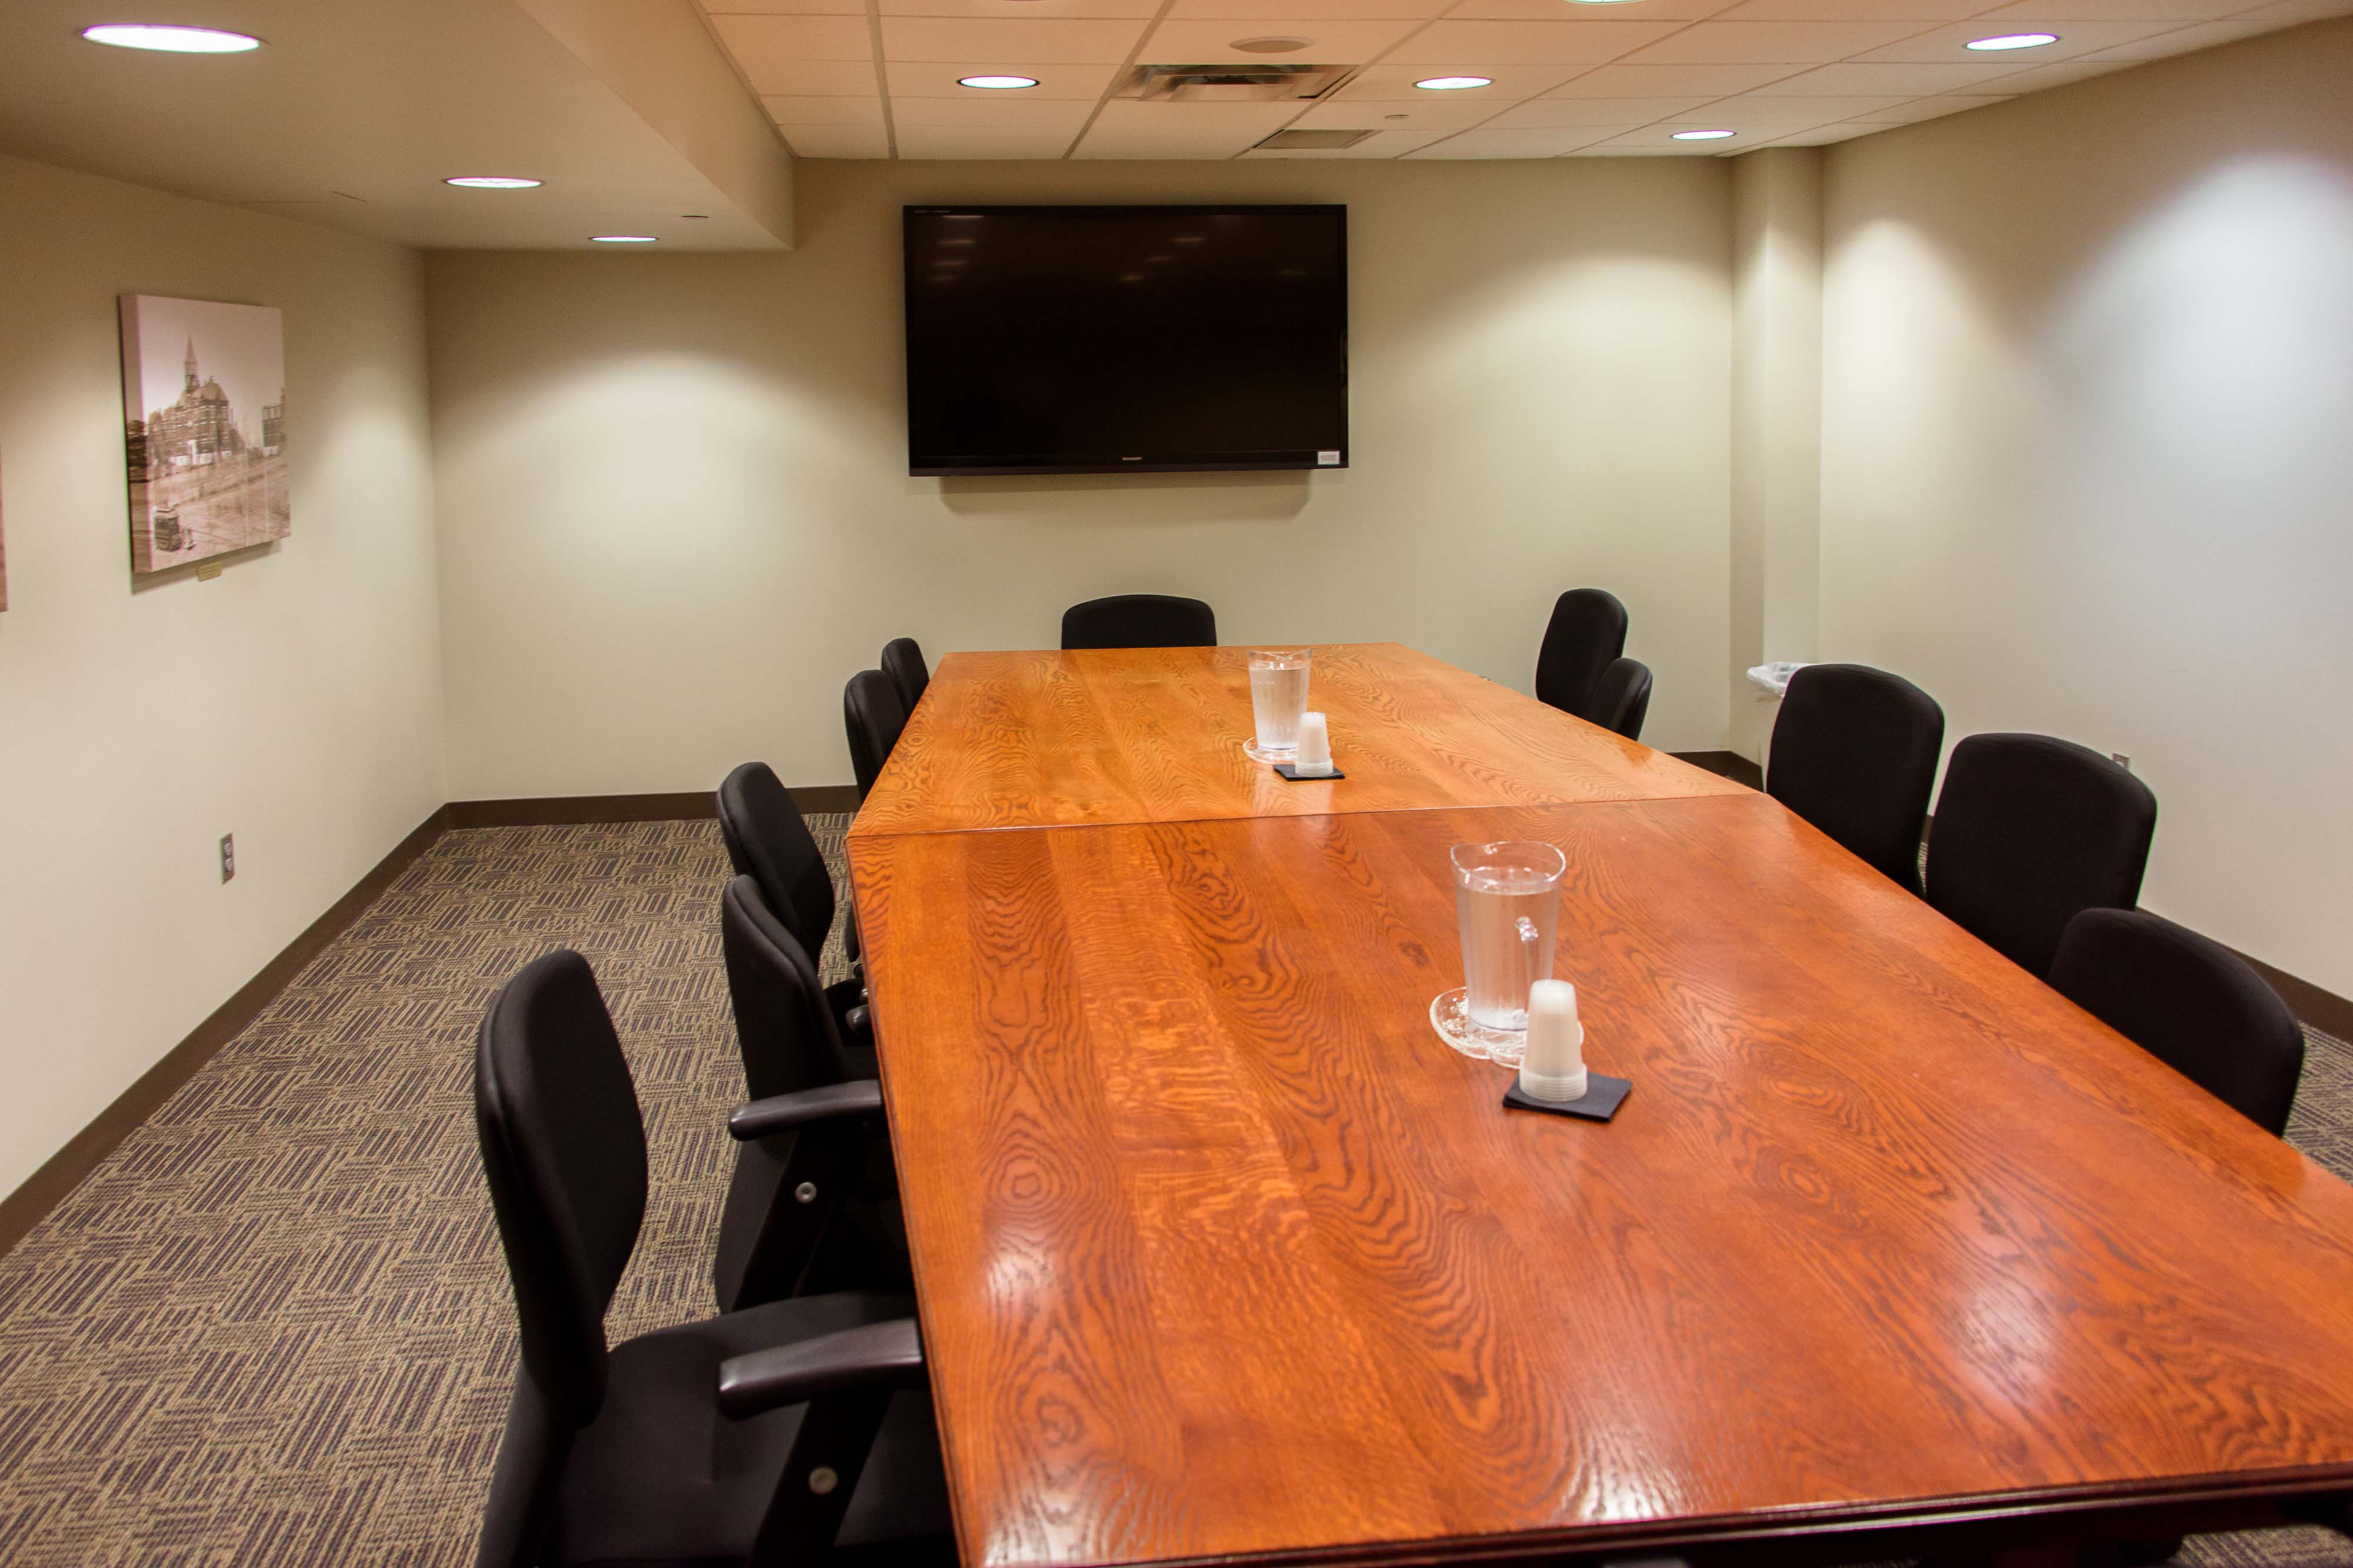 A straightforward view of the Hagen Conference Room showcasing its table and TV setup